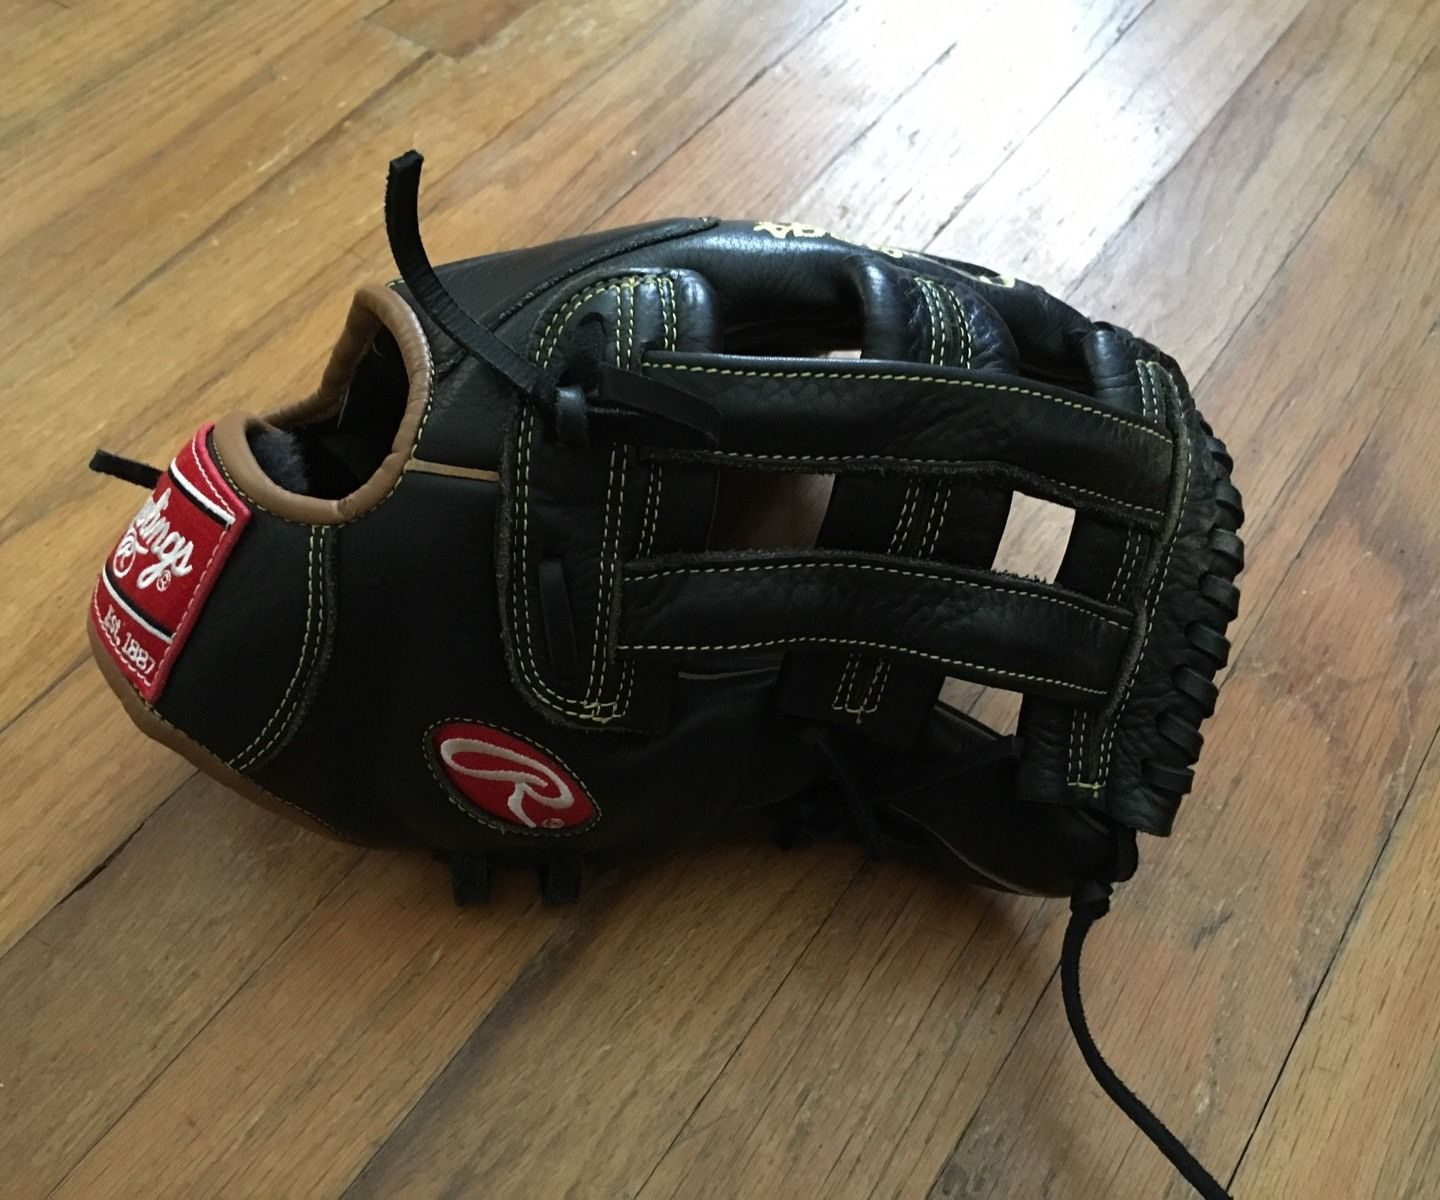 Buy and Sell Used Baseball Equipment on Ebay